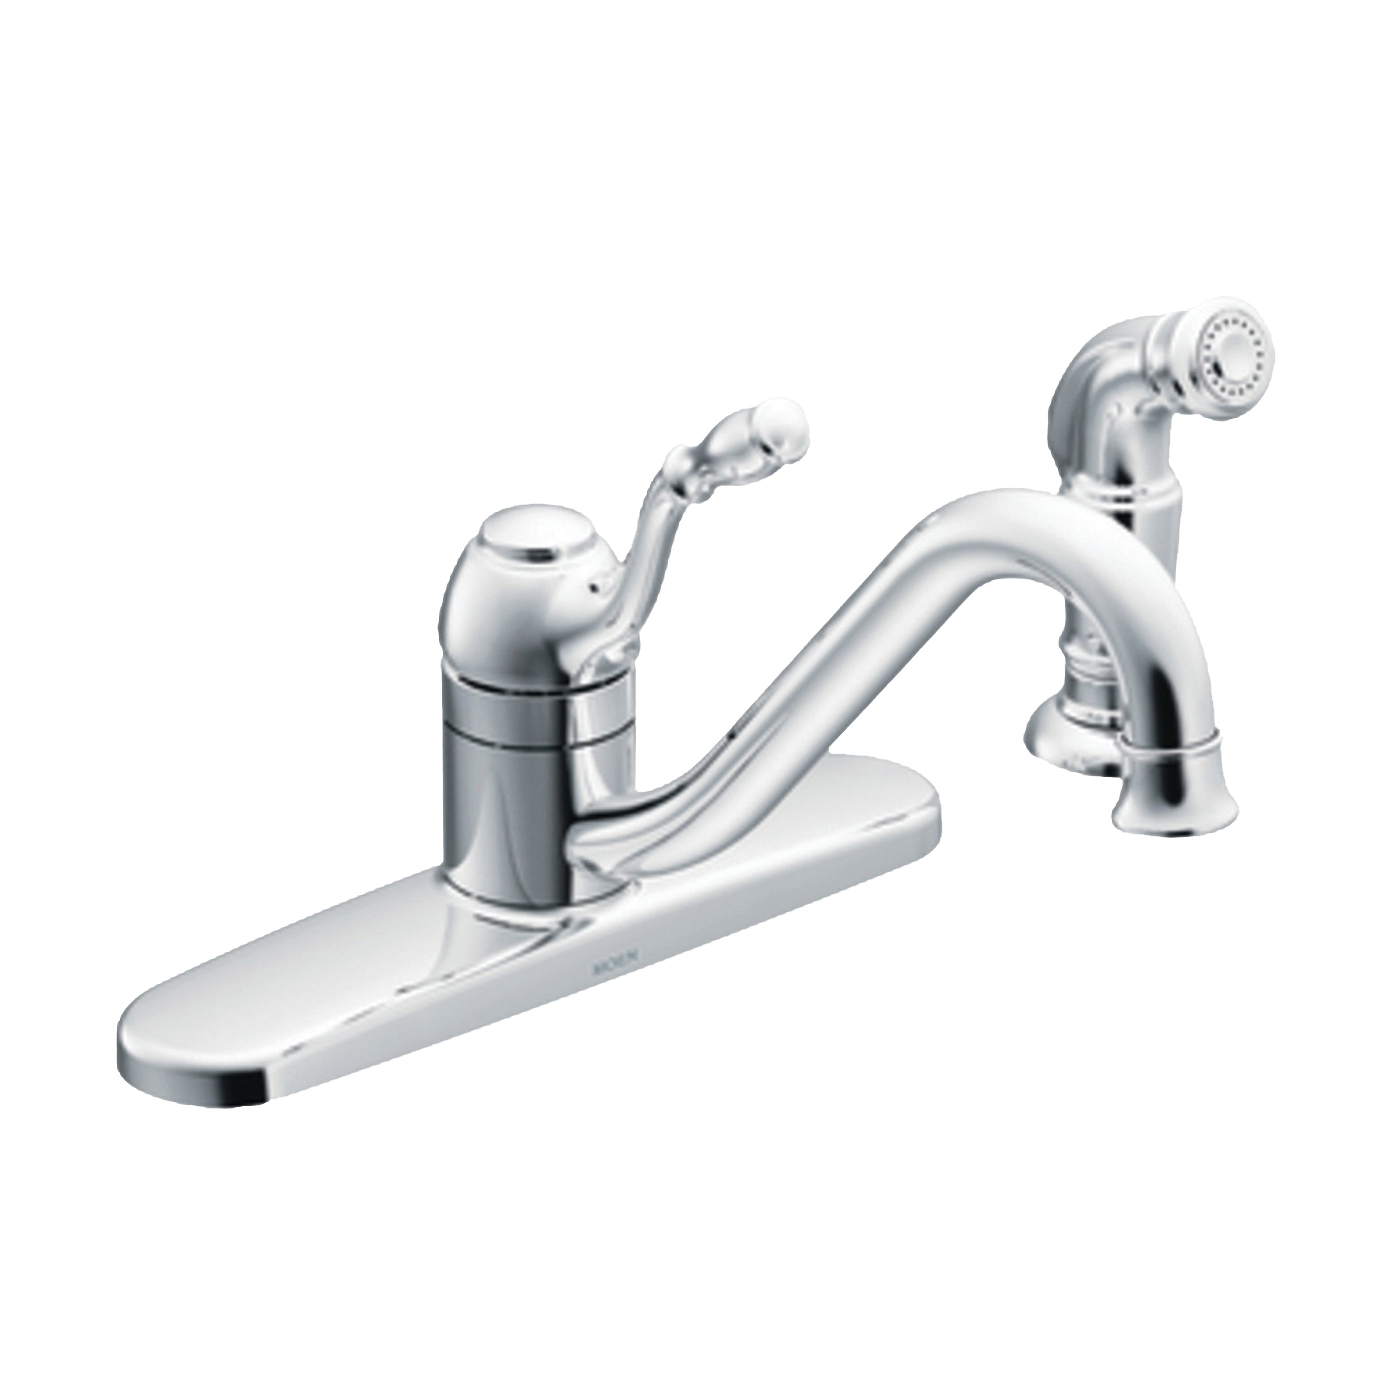 Picture of Moen Lindley CA87009 Kitchen Faucet, 1.5 gpm, 1-Faucet Handle, Stainless Steel, Chrome, Deck Mounting